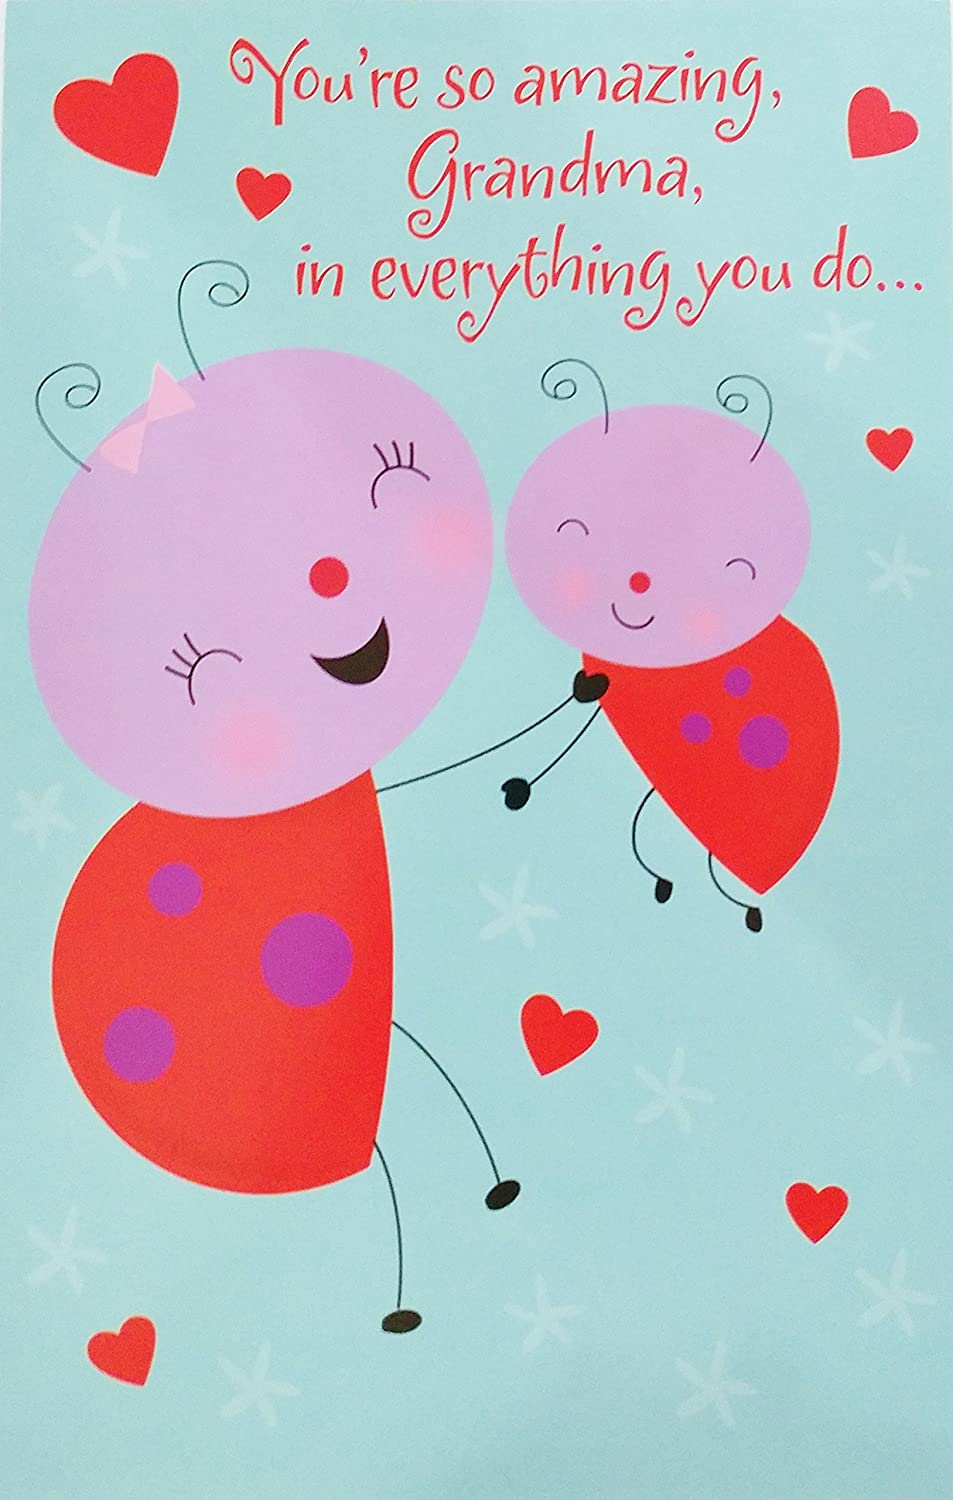 Amazon Com Youre So Amazing Grandma In Everything You Do Happy Valentines Day Greeting Card W Ladybugs For Grandmother Office Products